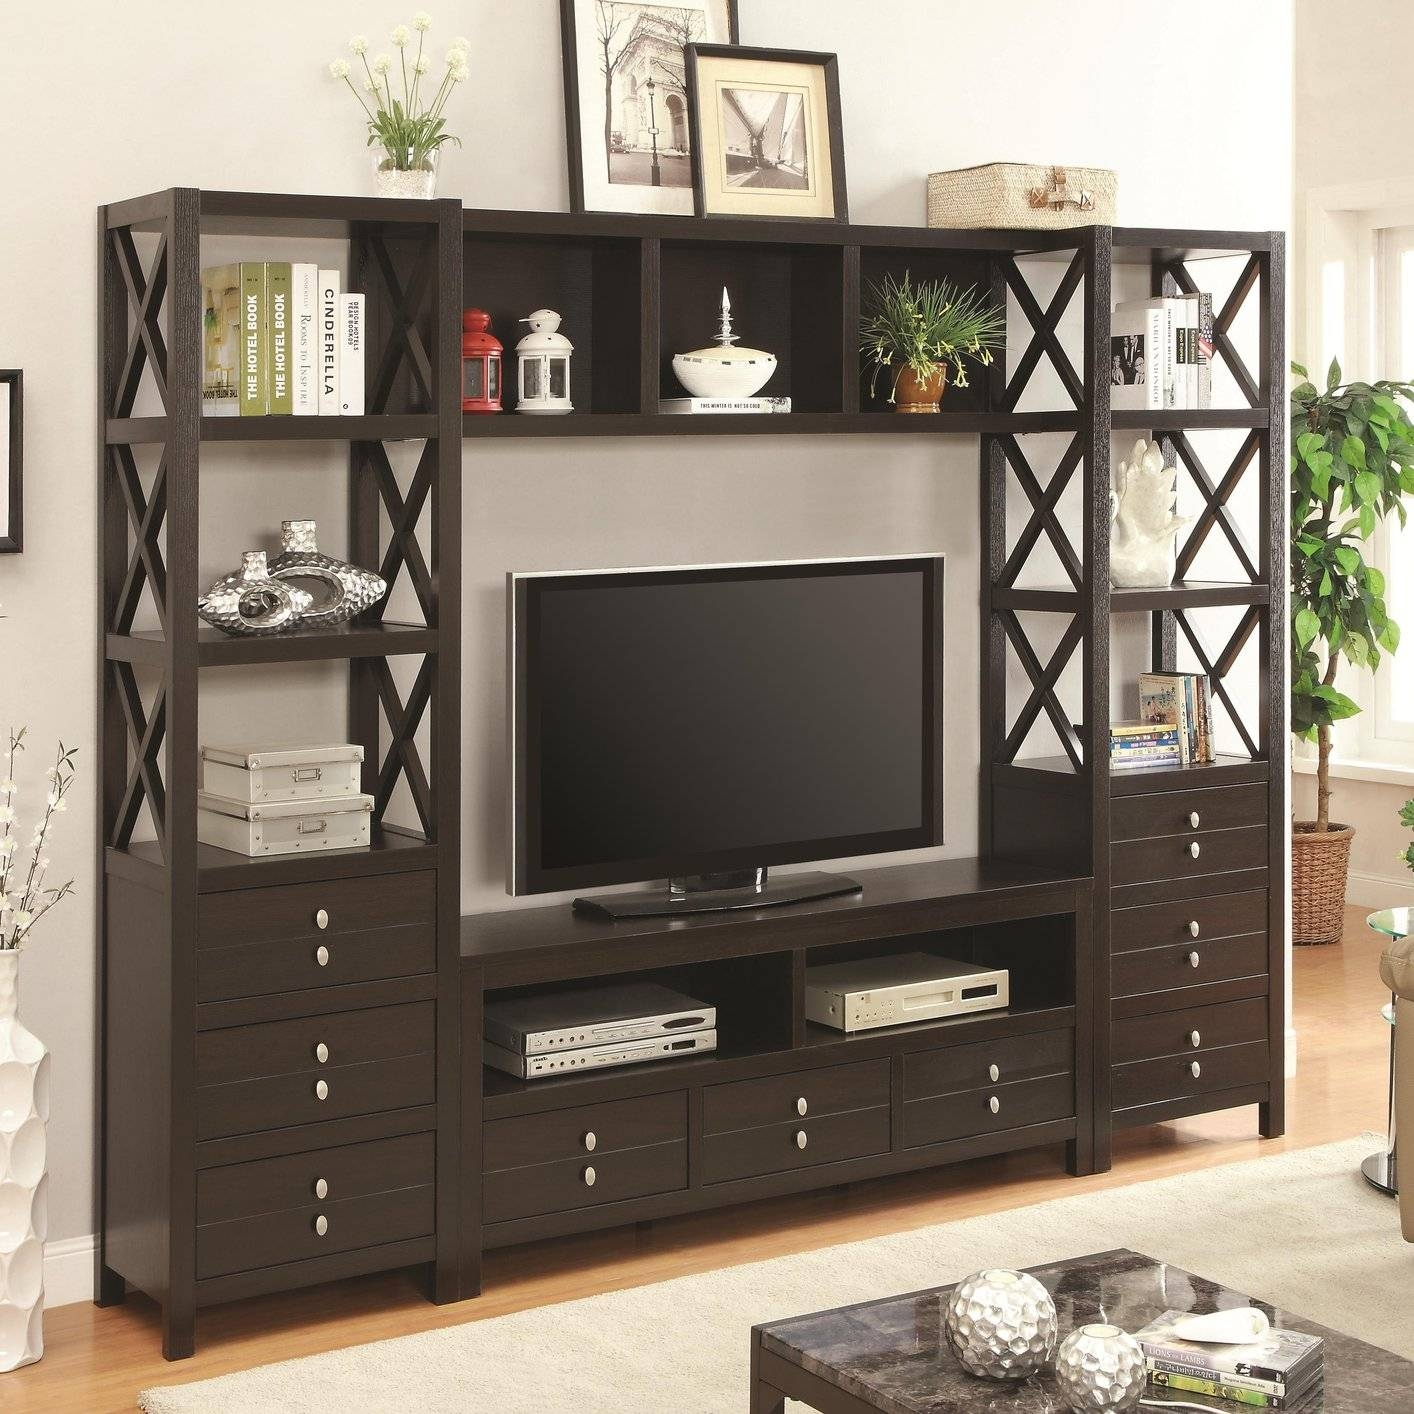 Brown Wood Tv Stand – Steal A Sofa Furniture Outlet Los Angeles Ca Intended For Wooden Tv Stands (View 13 of 15)